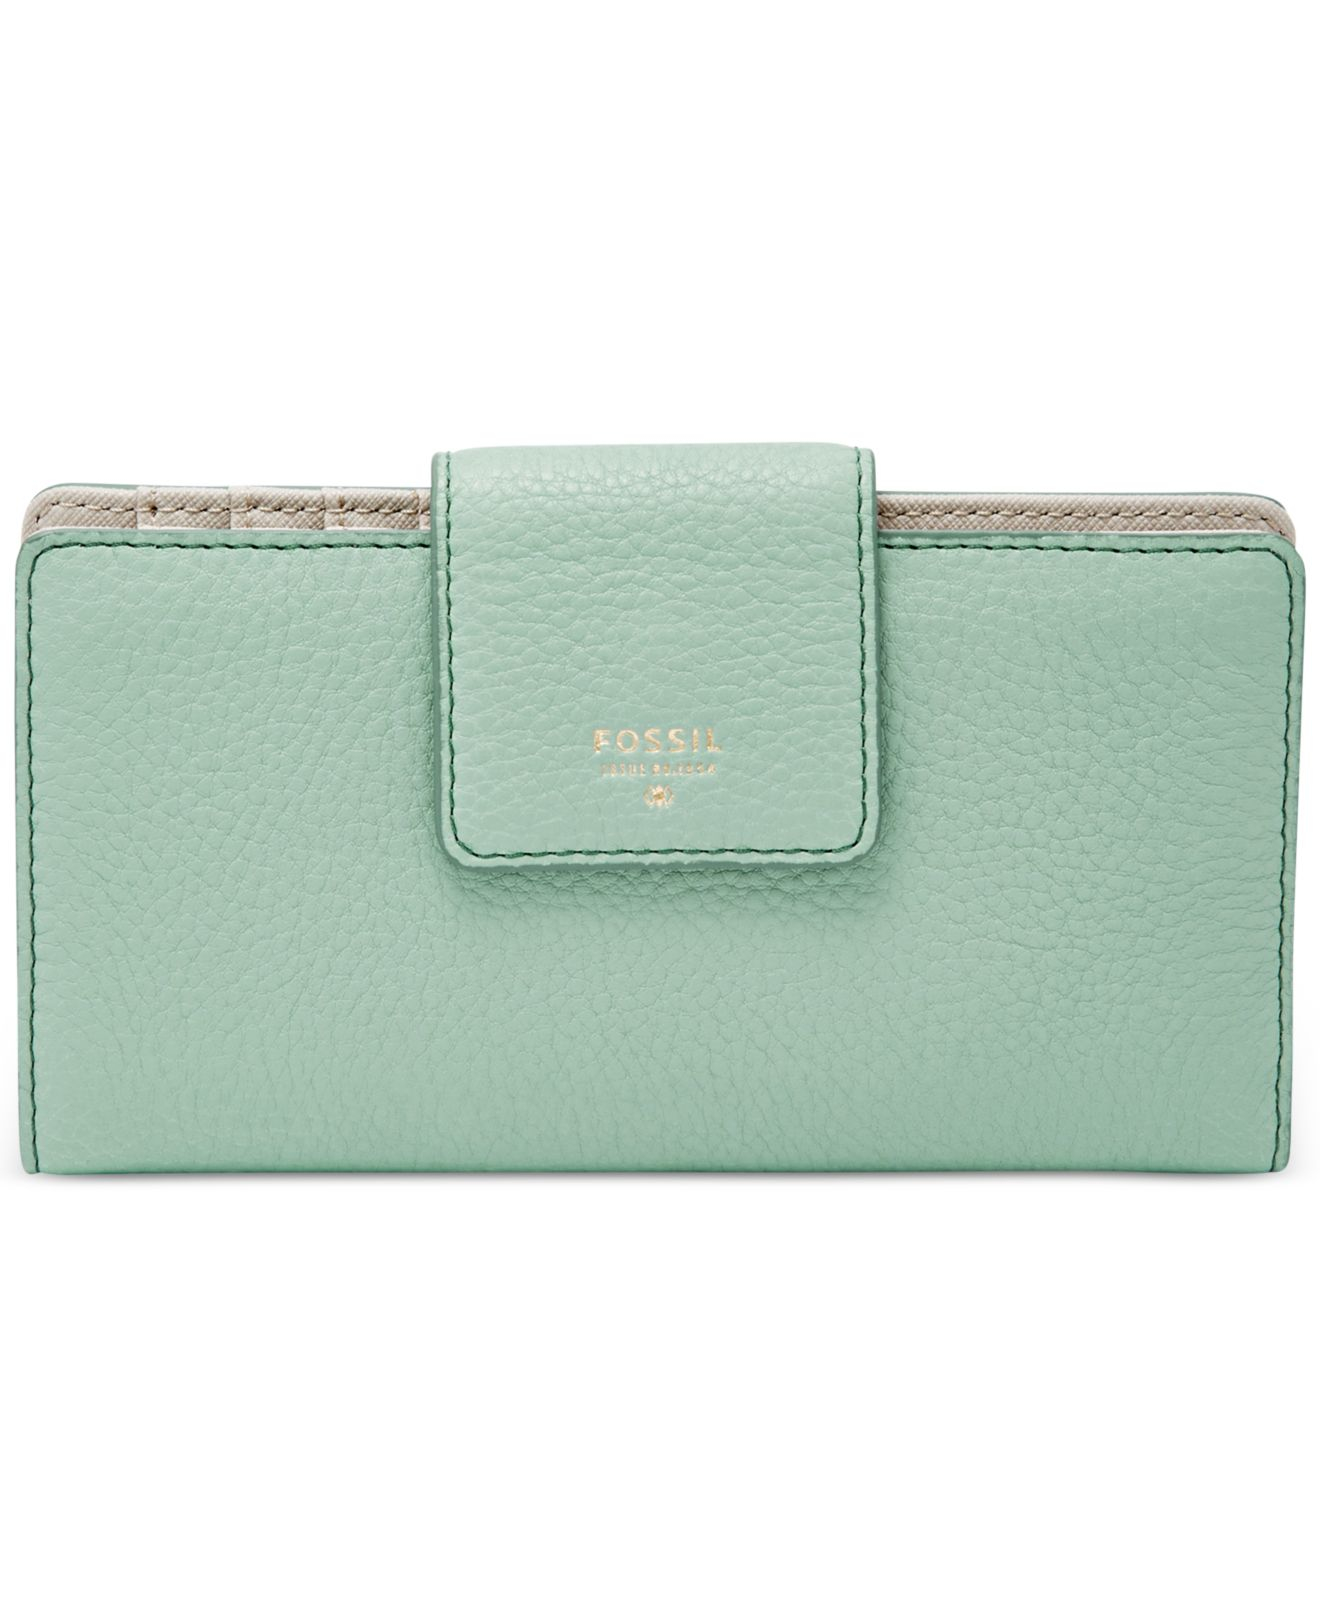 Which affordable handbag brands aren t 783900c791a50